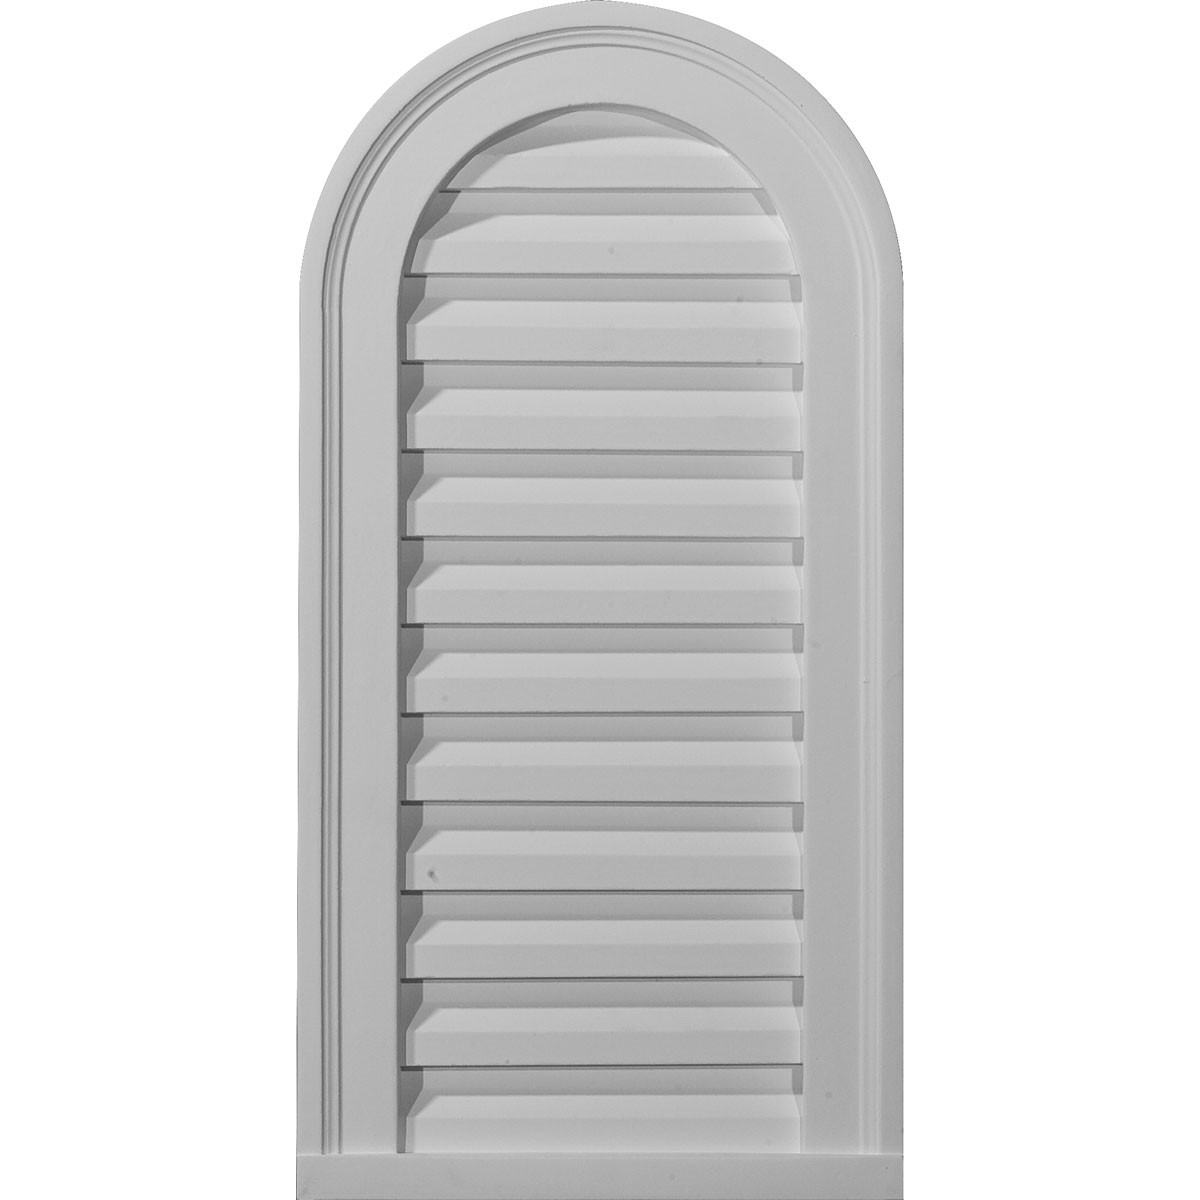 """EM-GVCA22X32F - 22""""W x 32""""H x 2 3/8""""P, Cathedral Gable Vent Louver, Functional"""